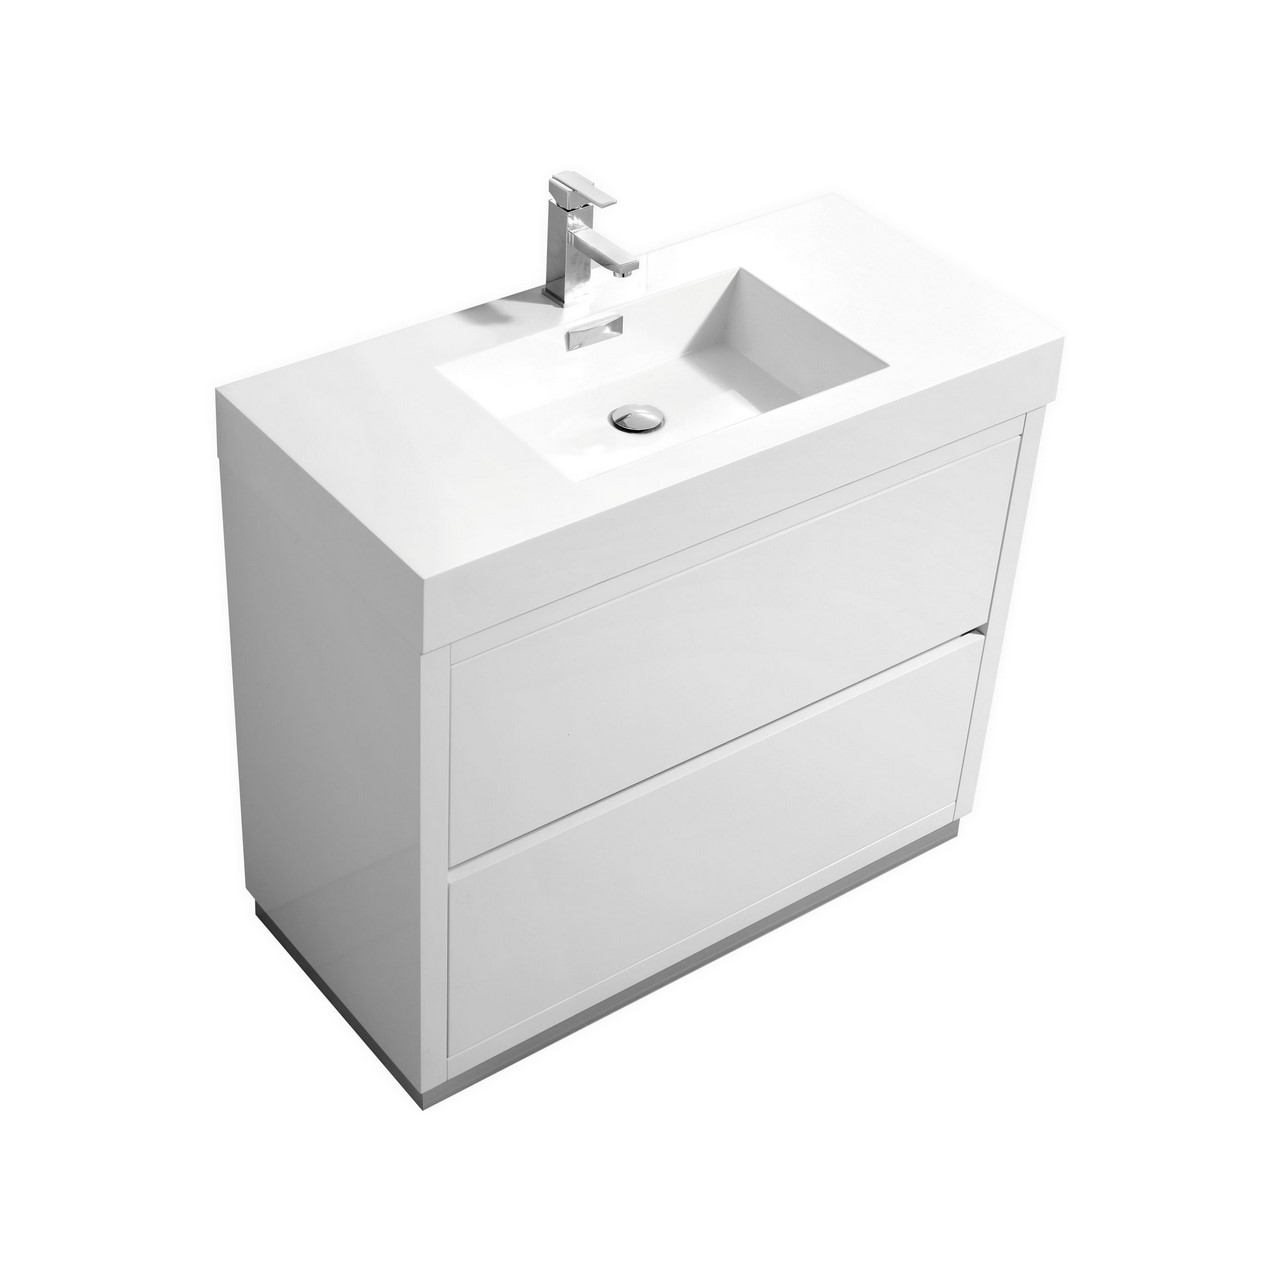 "Modern Lux 40"" High Gloss White Free Standing Modern Bathroom Vanity"